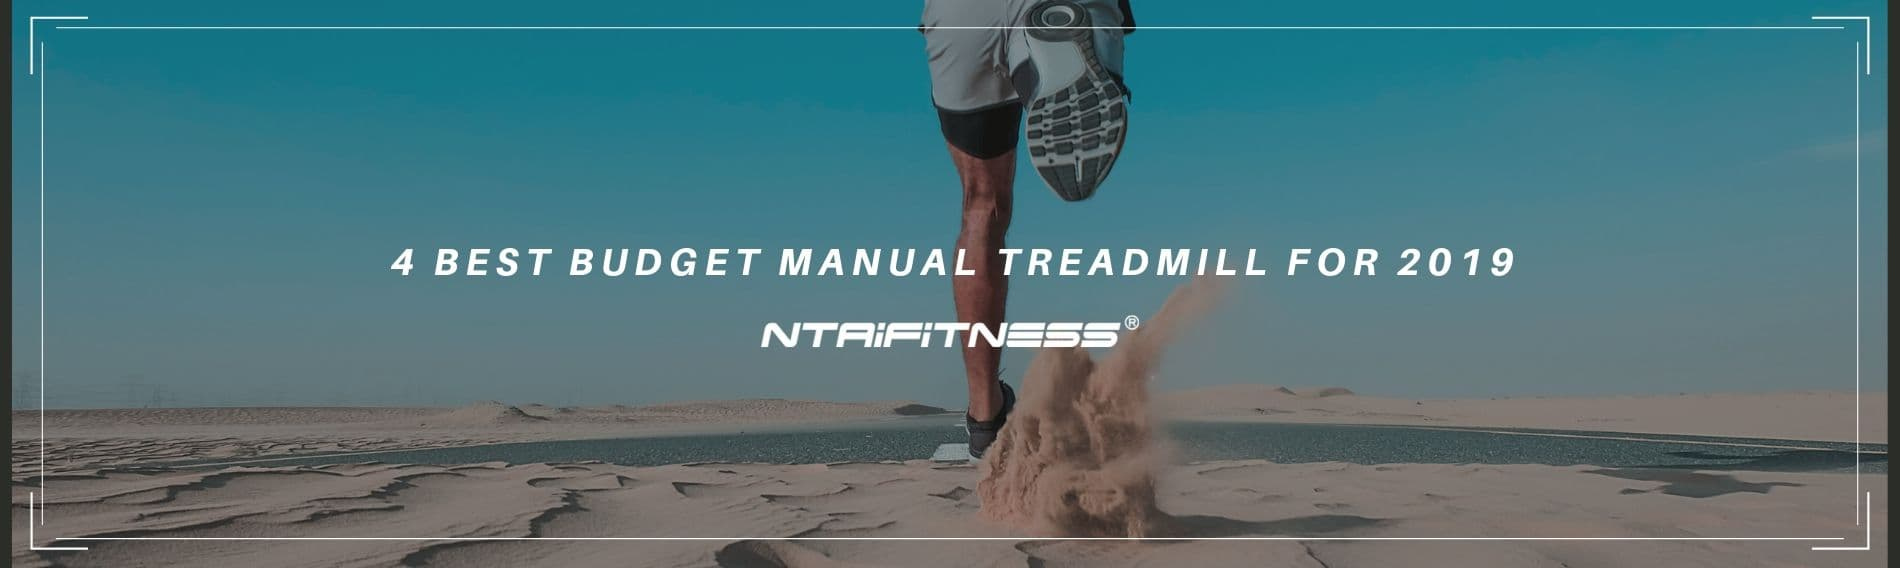 4 Best Budget Manual Treadmill for 2019